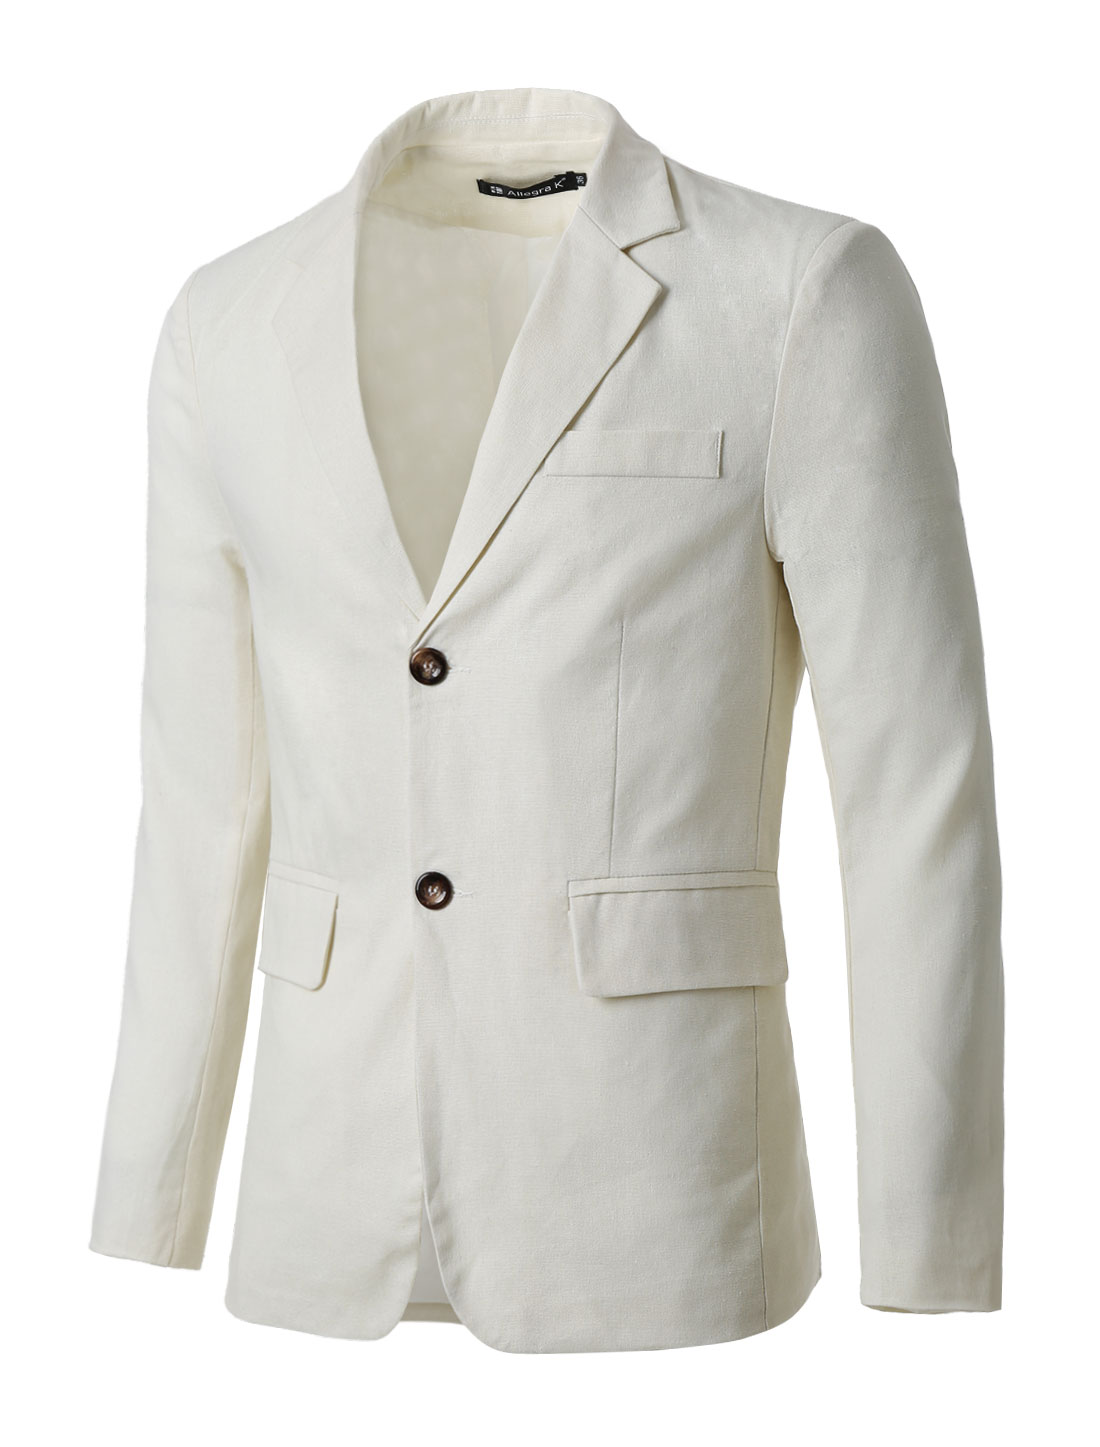 Men Notched Lapel Pockets Front Two-Button Fastening Blazer Off White M